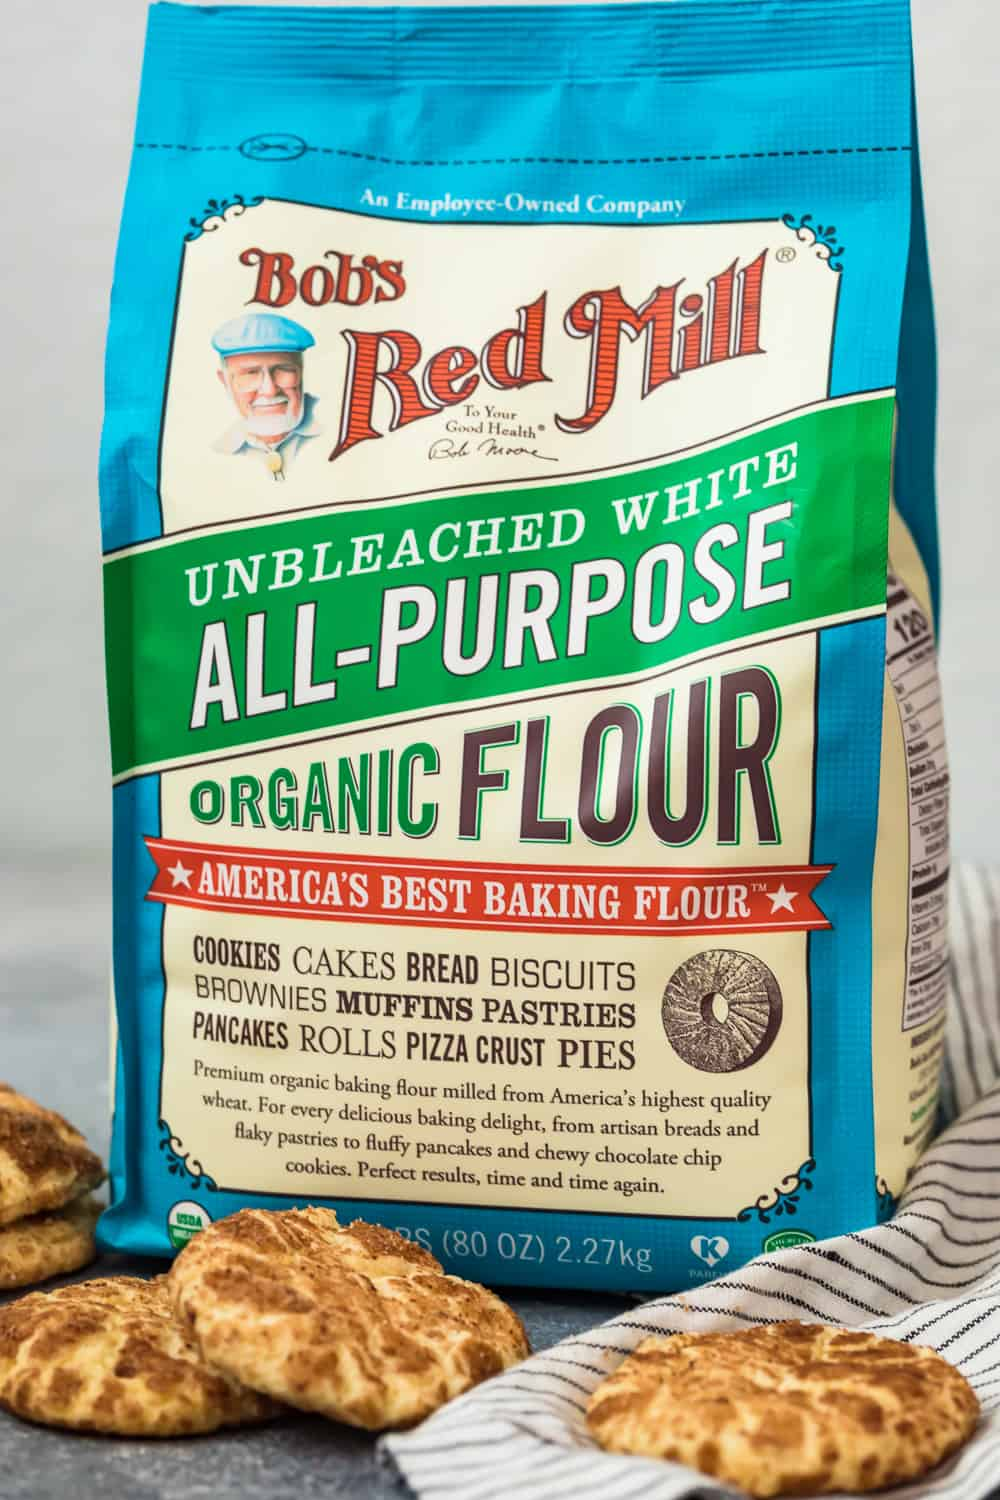 a bag of bob's red mill flour behind some cookies